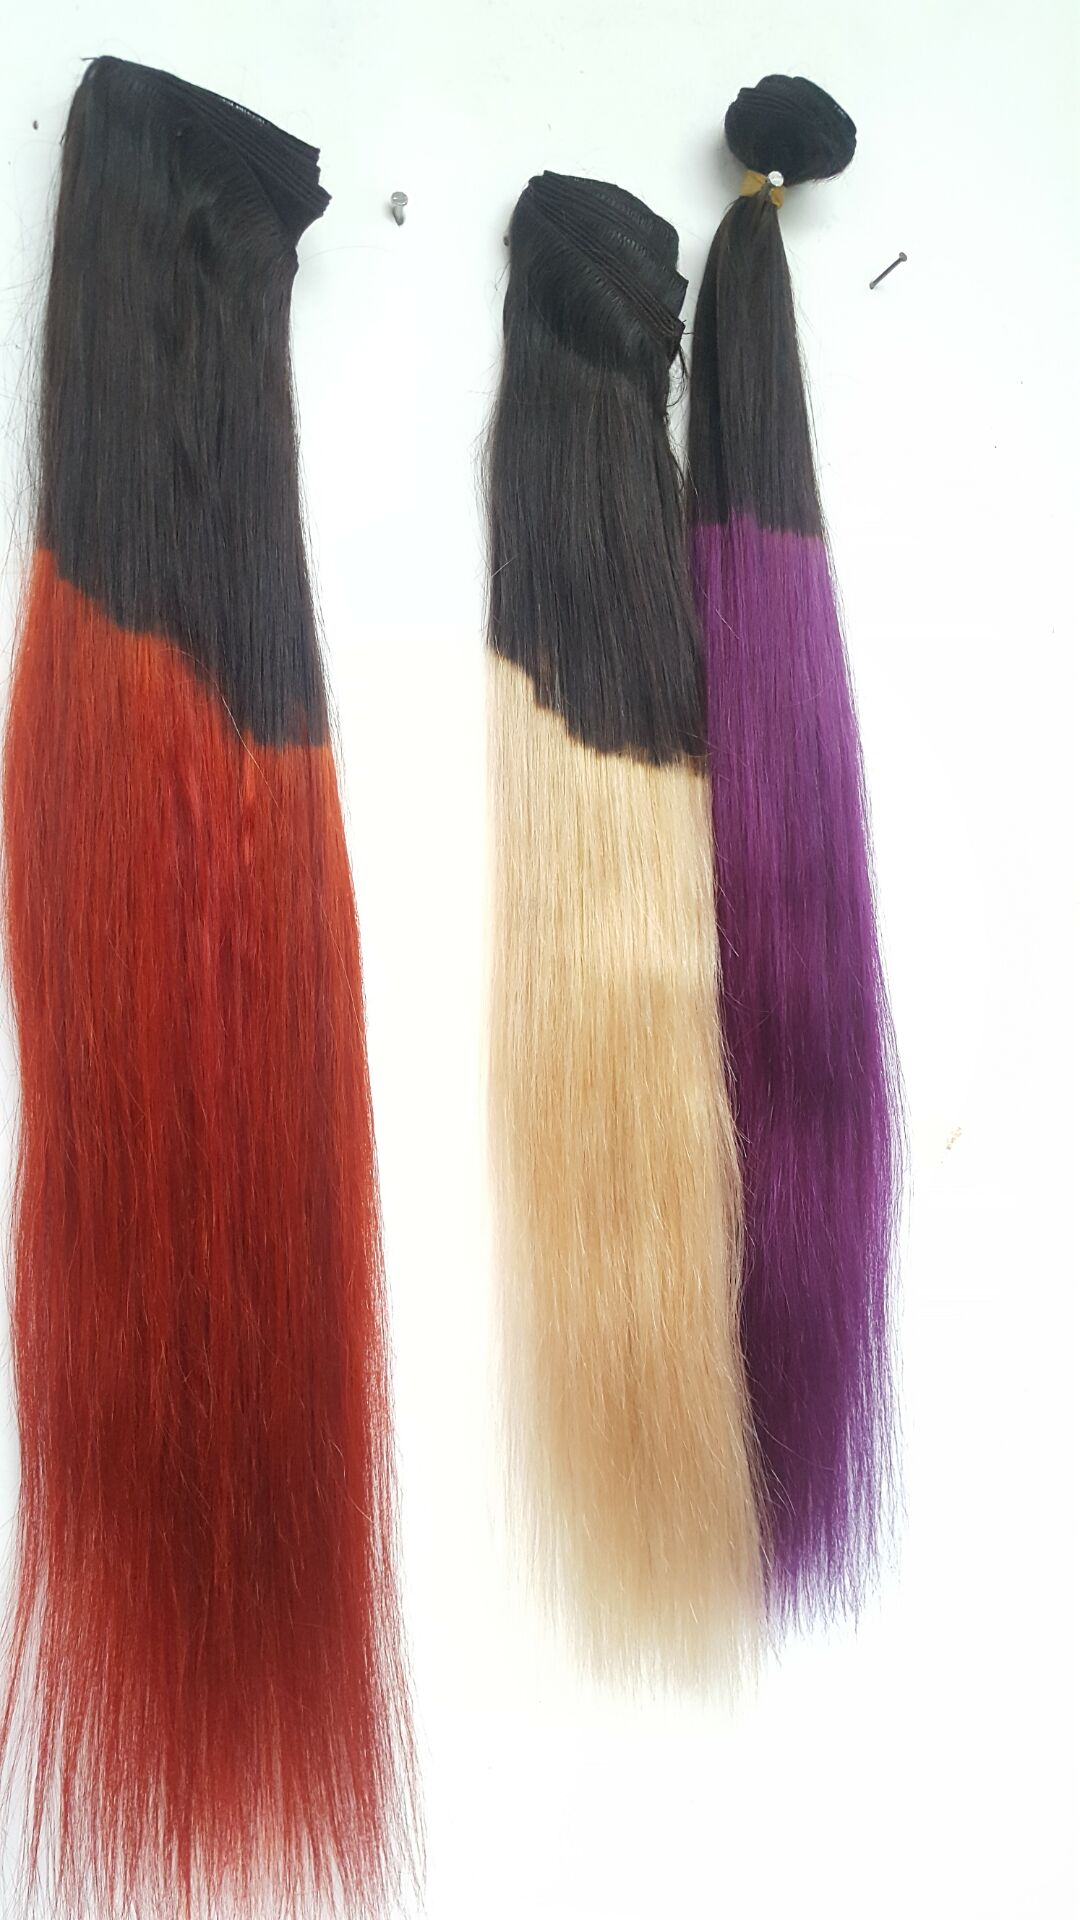 30%- 70% ombre clip in hair extensions